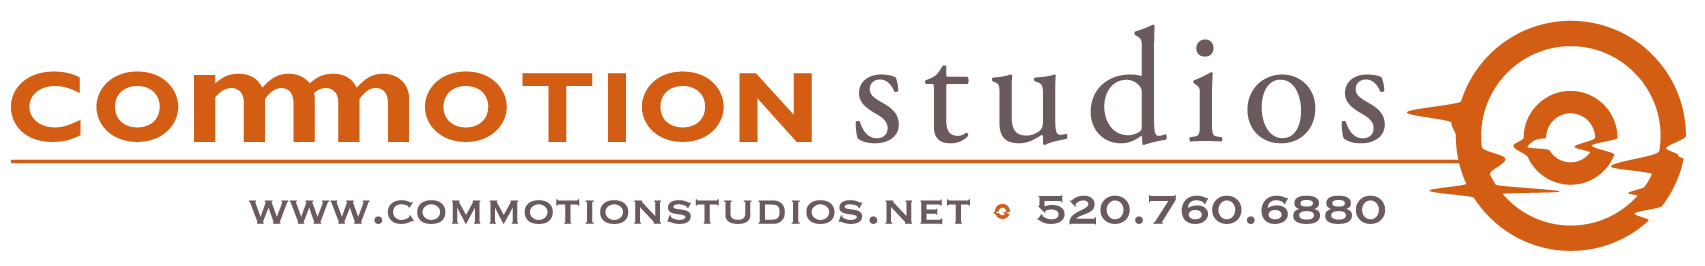 Thank you to Commotion Studios for being a 2018 Nourish Food Celebrator! www.commotionstudios.net